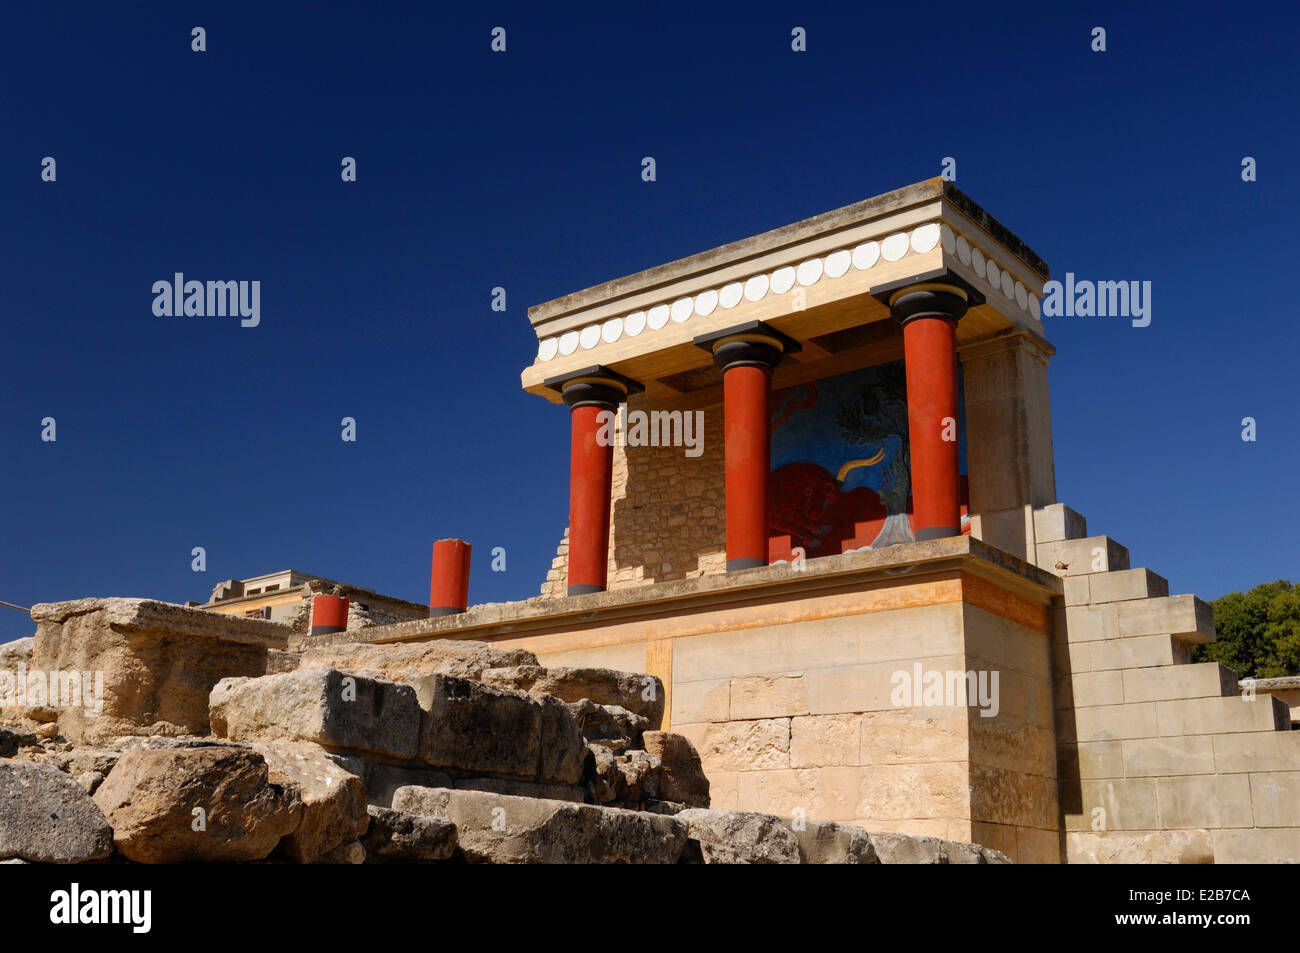 greek mythology and b knossos c Ancient origins articles related to knossos in the sections of history, archaeology, human origins, unexplained, artifacts,  in greek mythology, the labyrinth was.